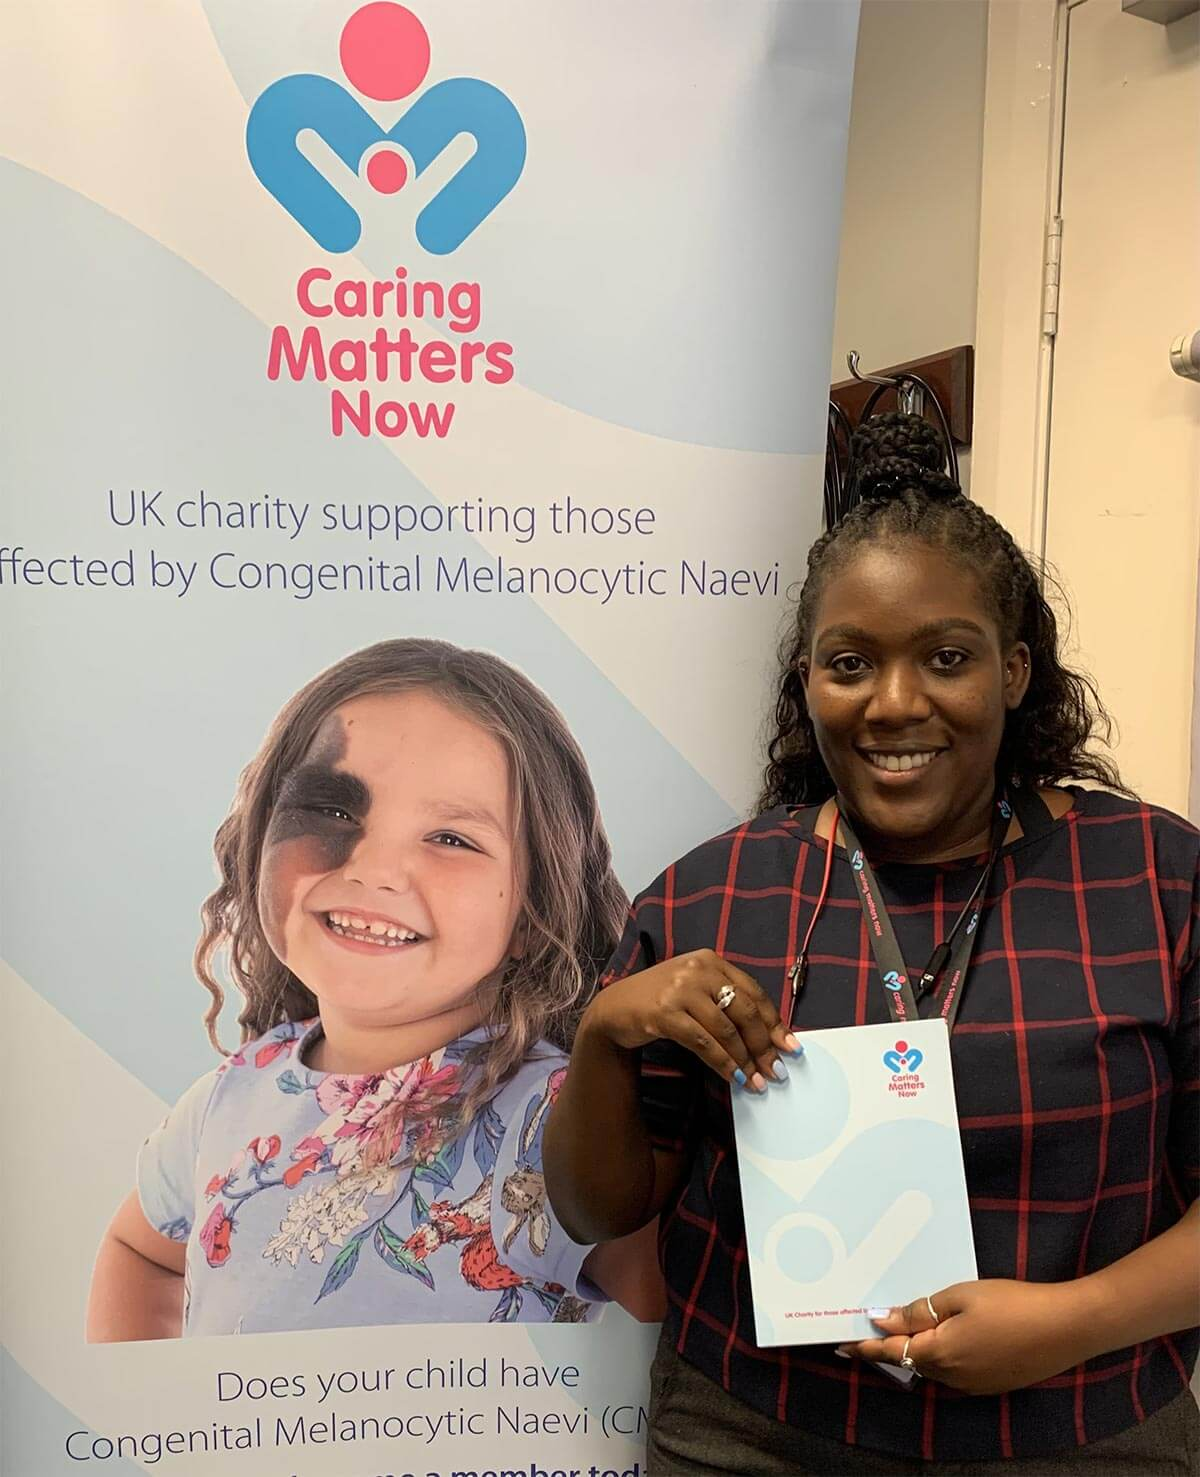 Caring Matters Now launches a new support Initiative at Great Ormond Street Hospital for Children